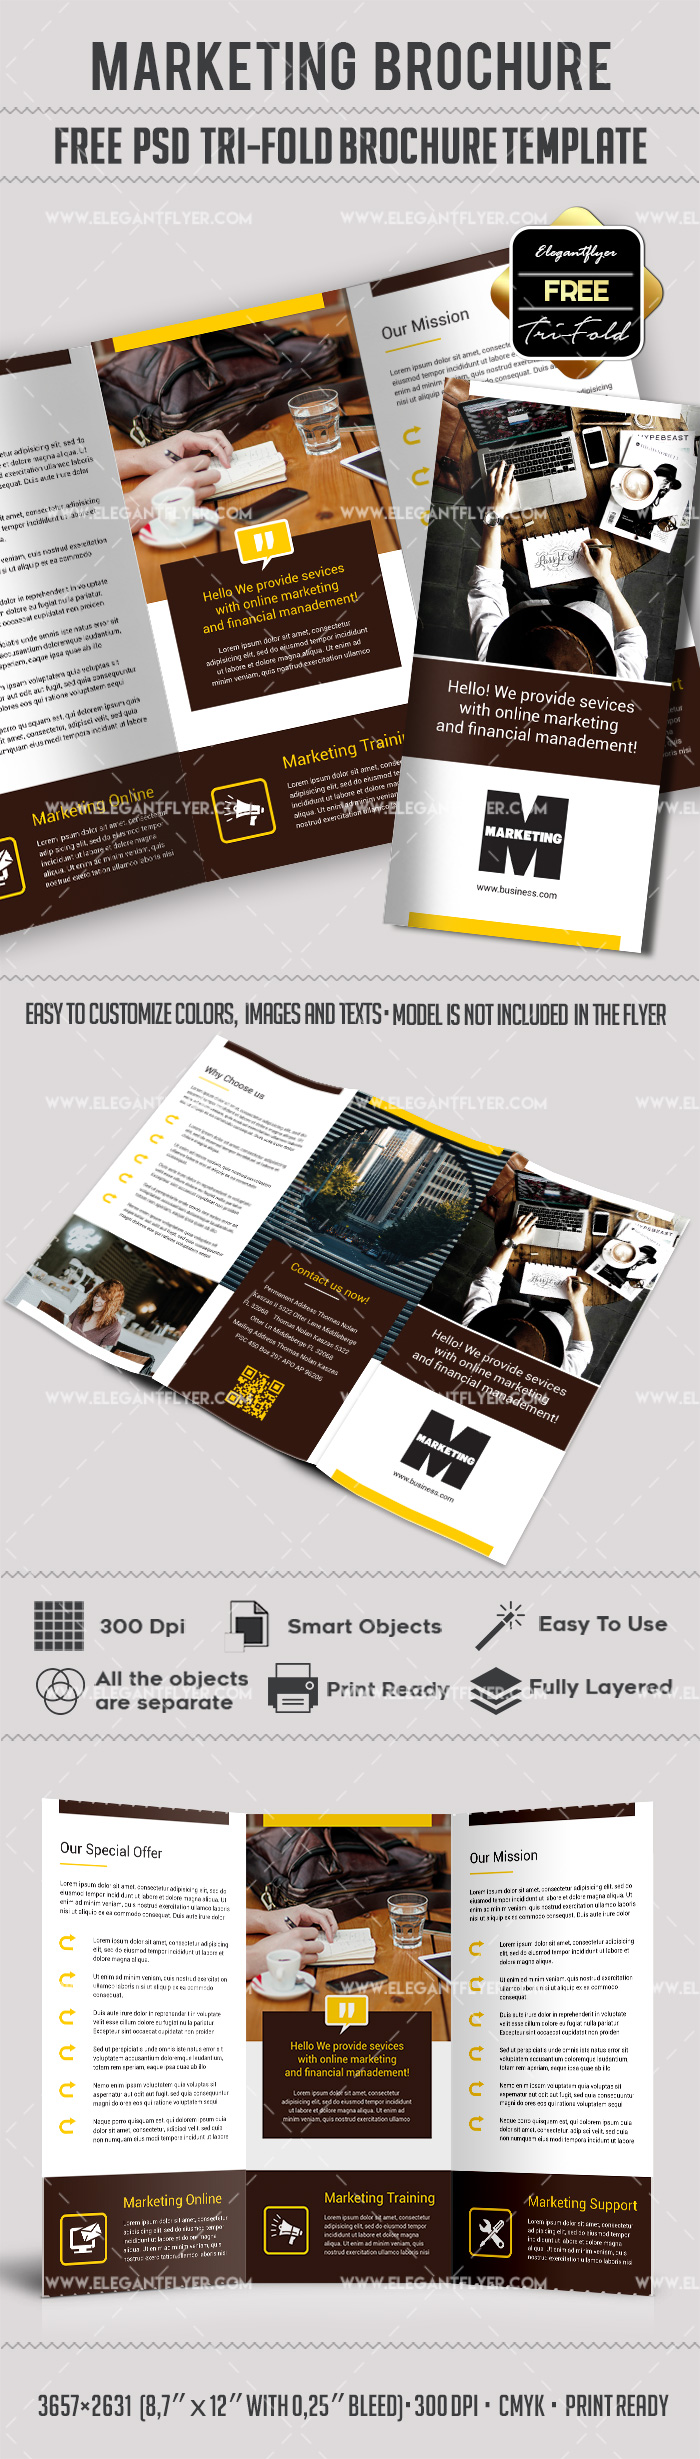 Marketing free tri fold psd brochure template by for Marketing brochures templates